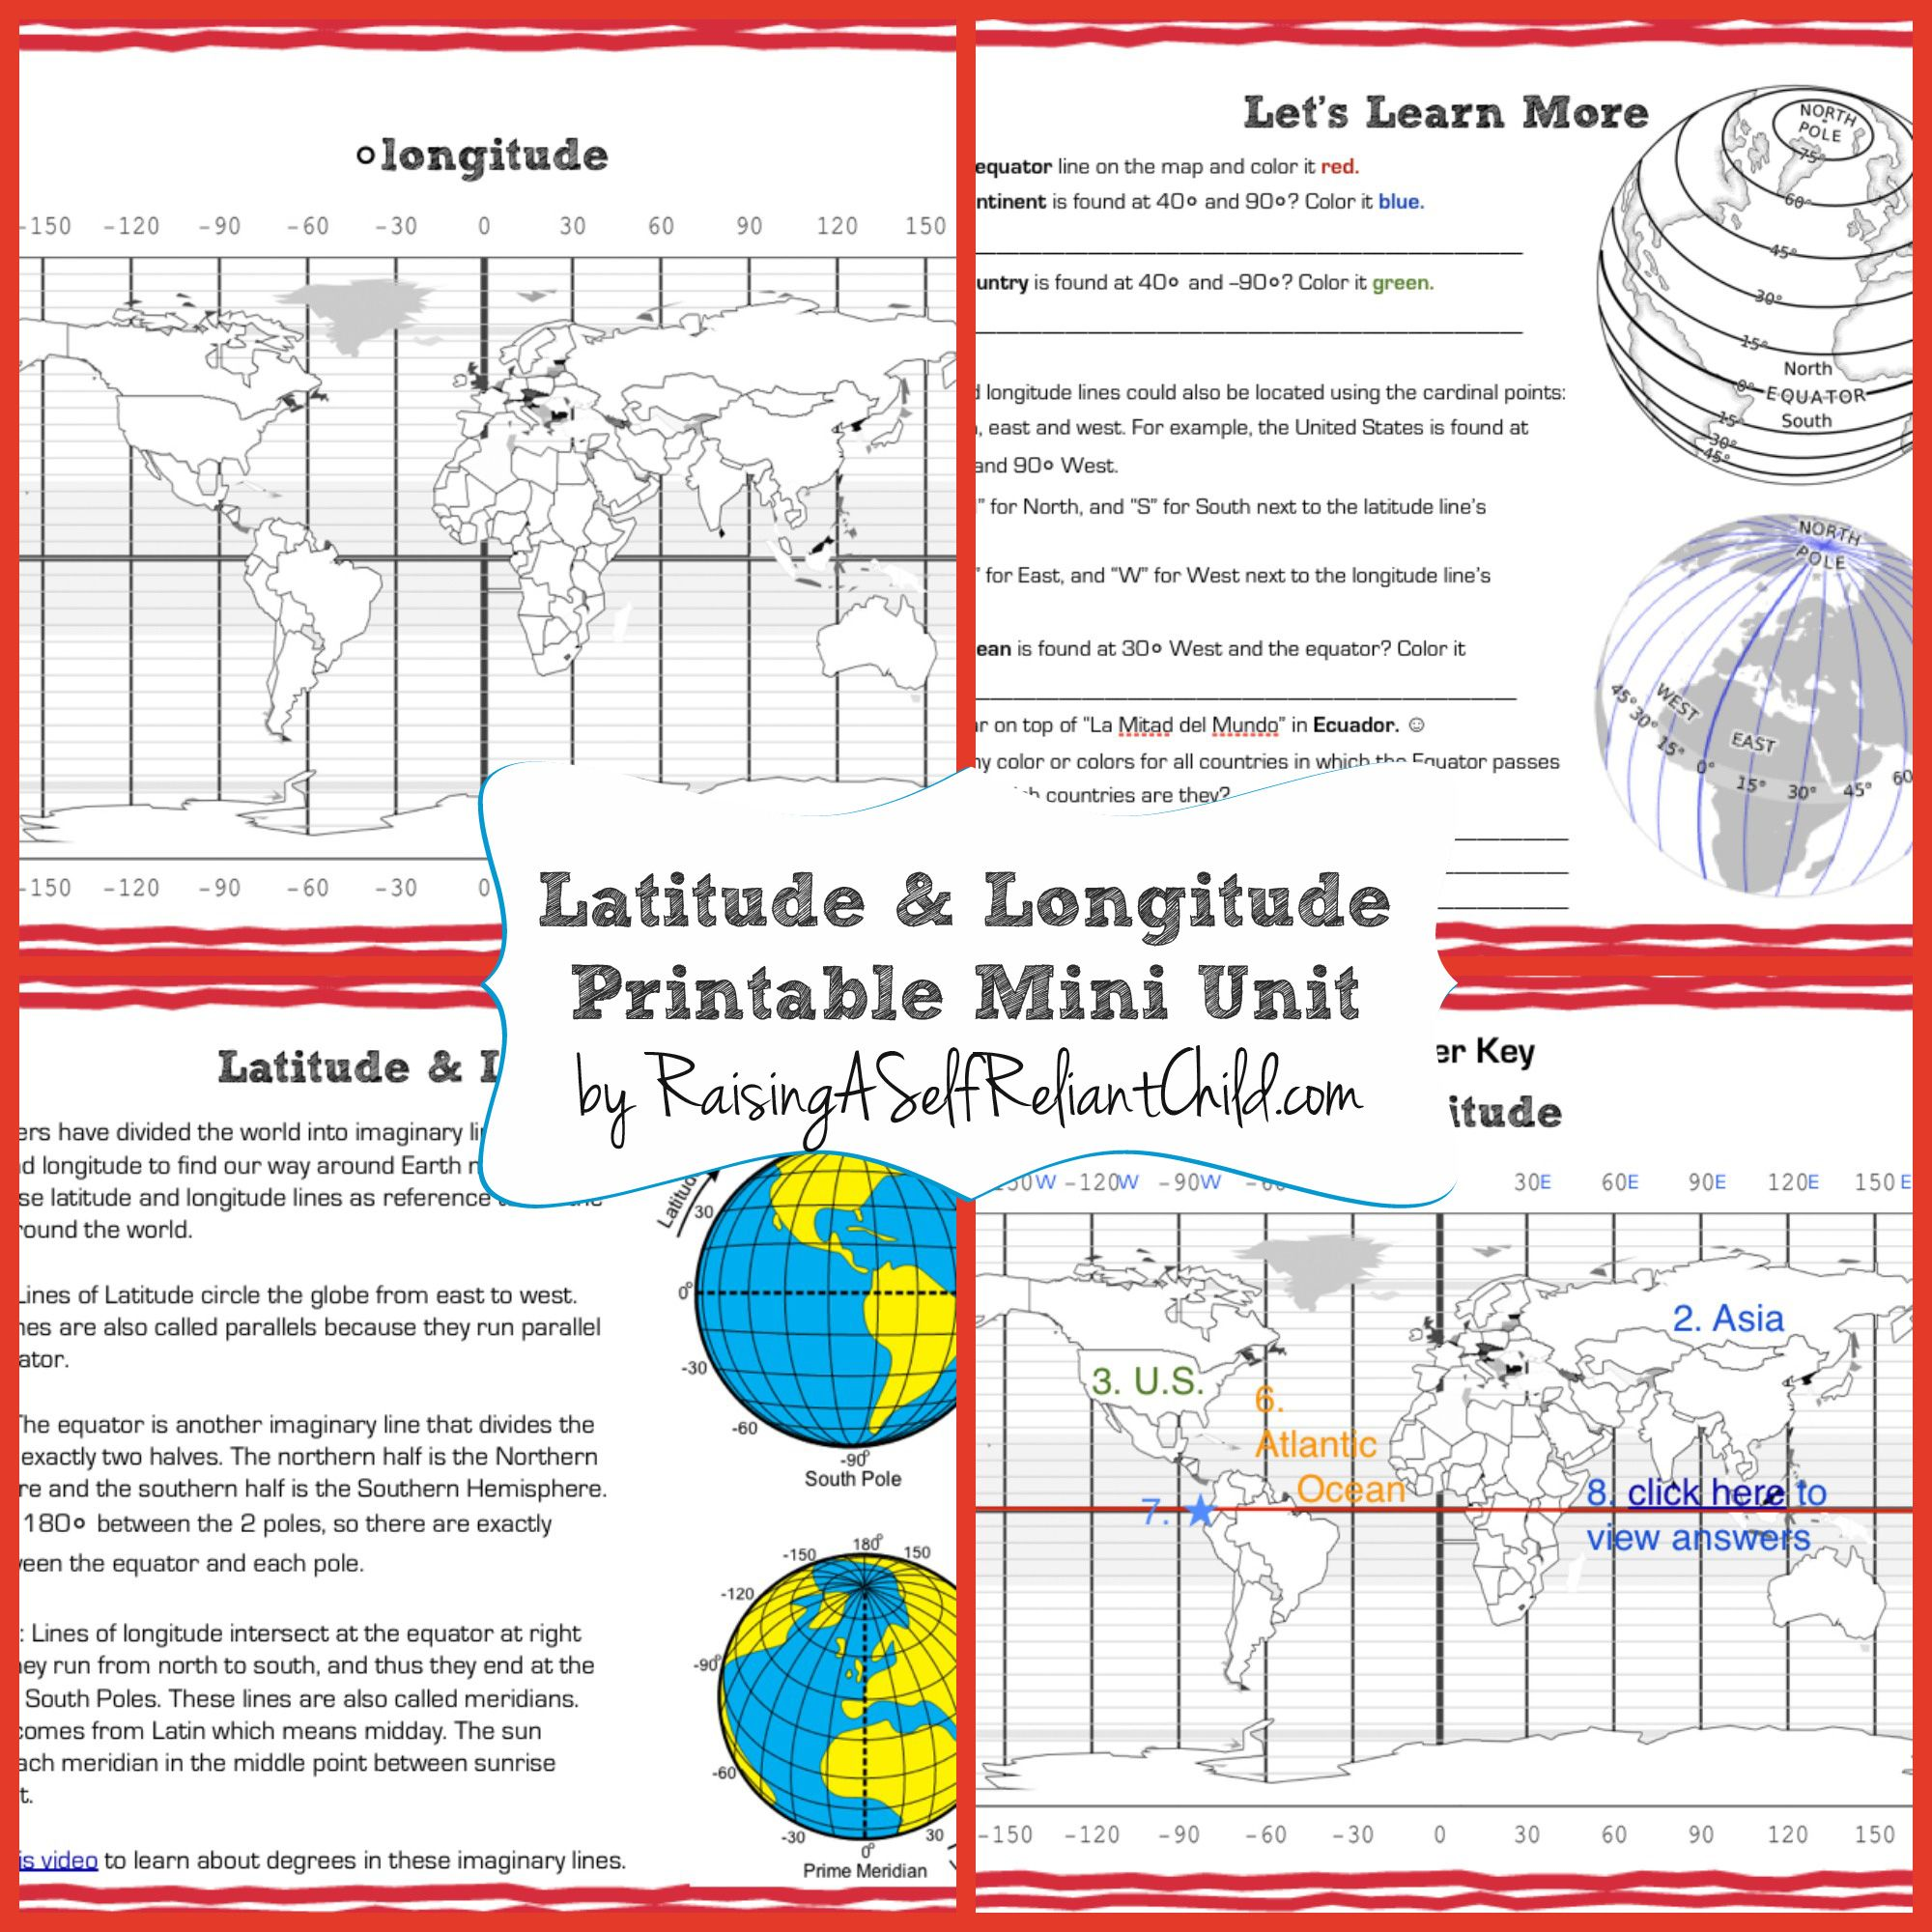 Worksheets Longitude And Latitude Worksheets free printable mini unit latitude and longitude for kids the kids